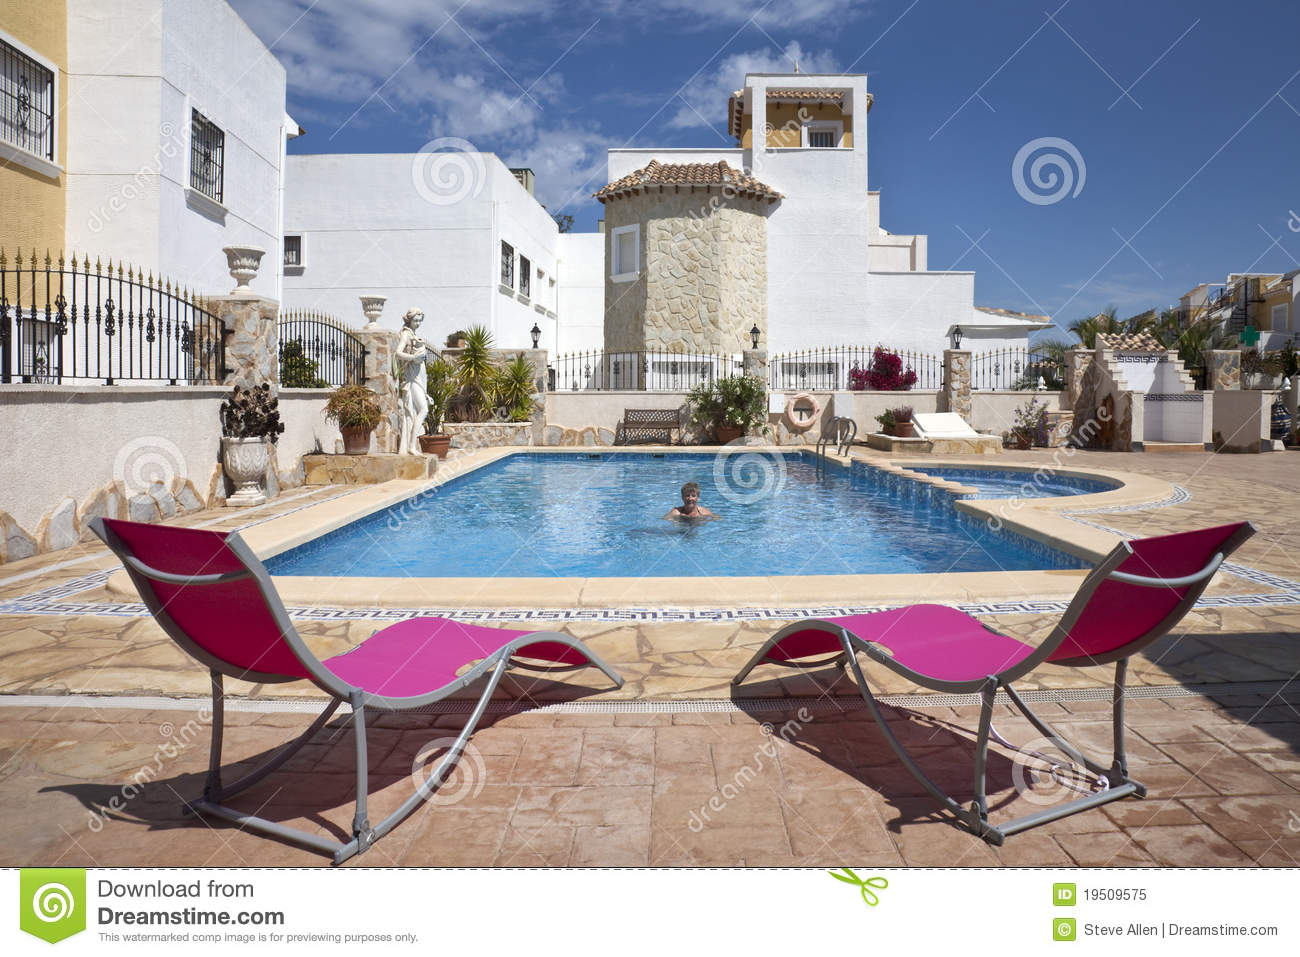 Spanish vacation resort swimming pool royalty free stock photo image 19509575 for What is swimming pool in spanish